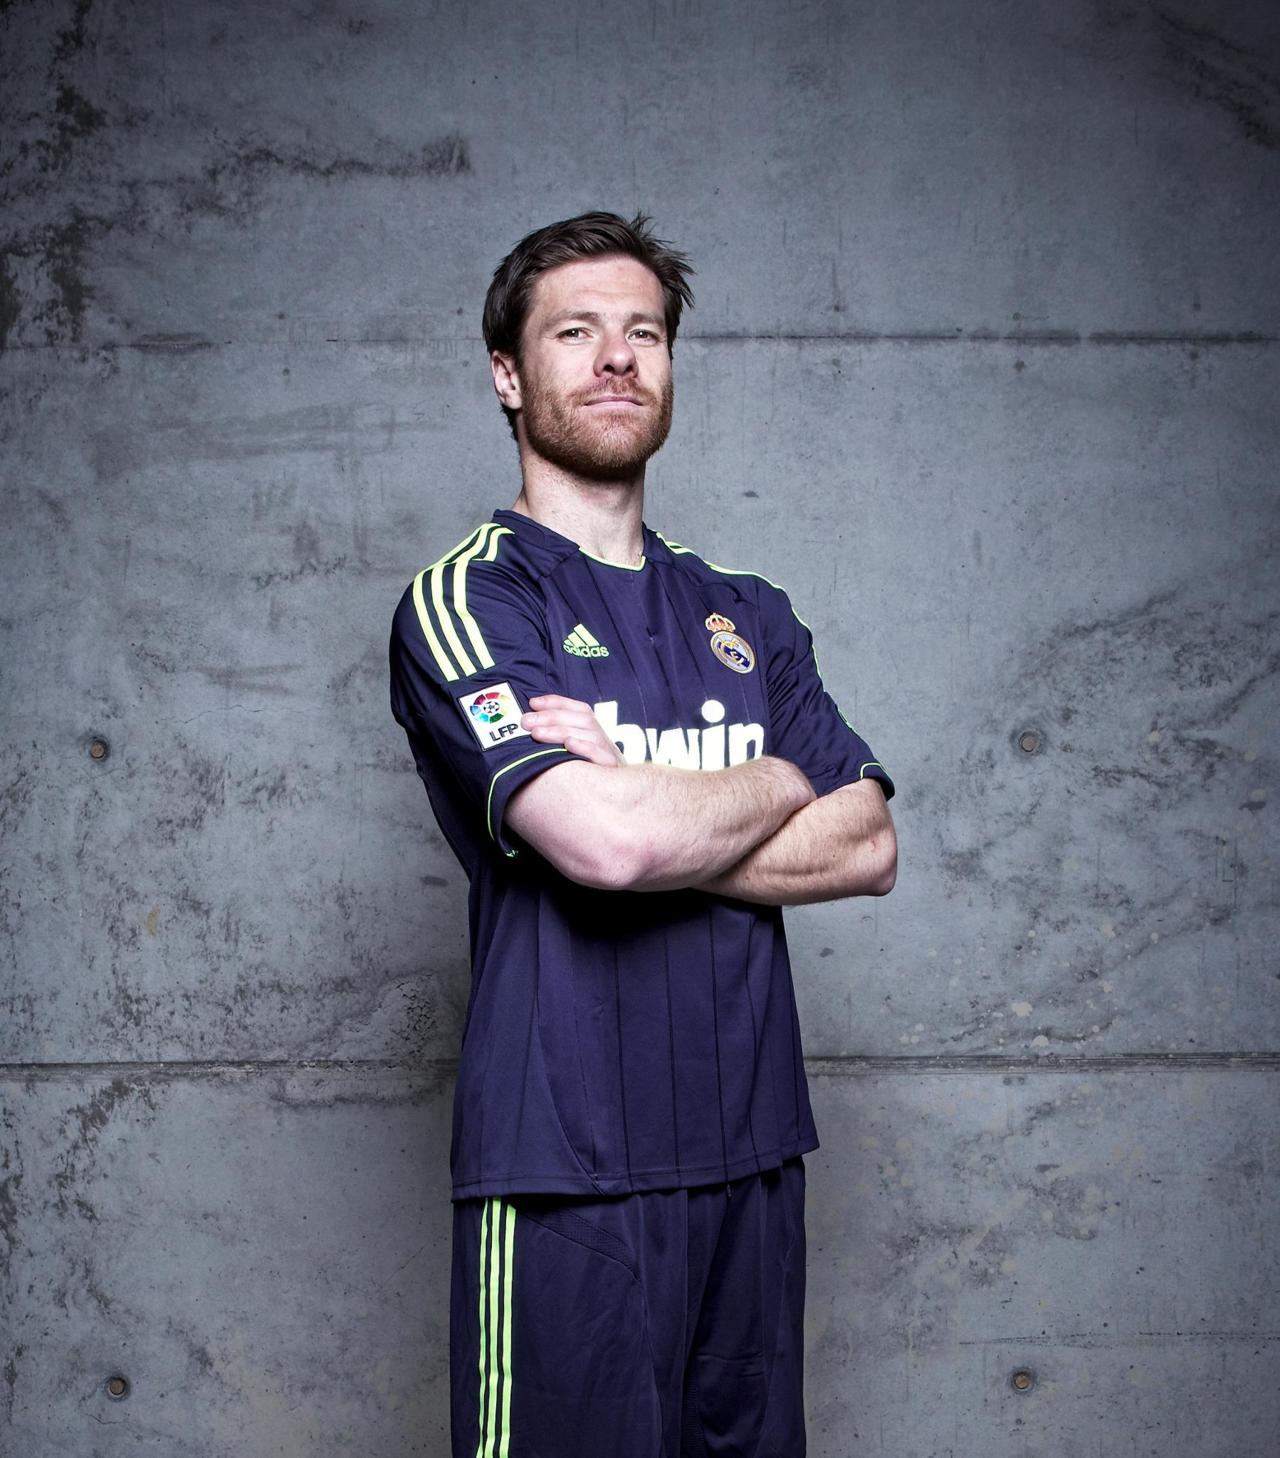 1280x1458 - Xabi Alonso Wallpapers 18